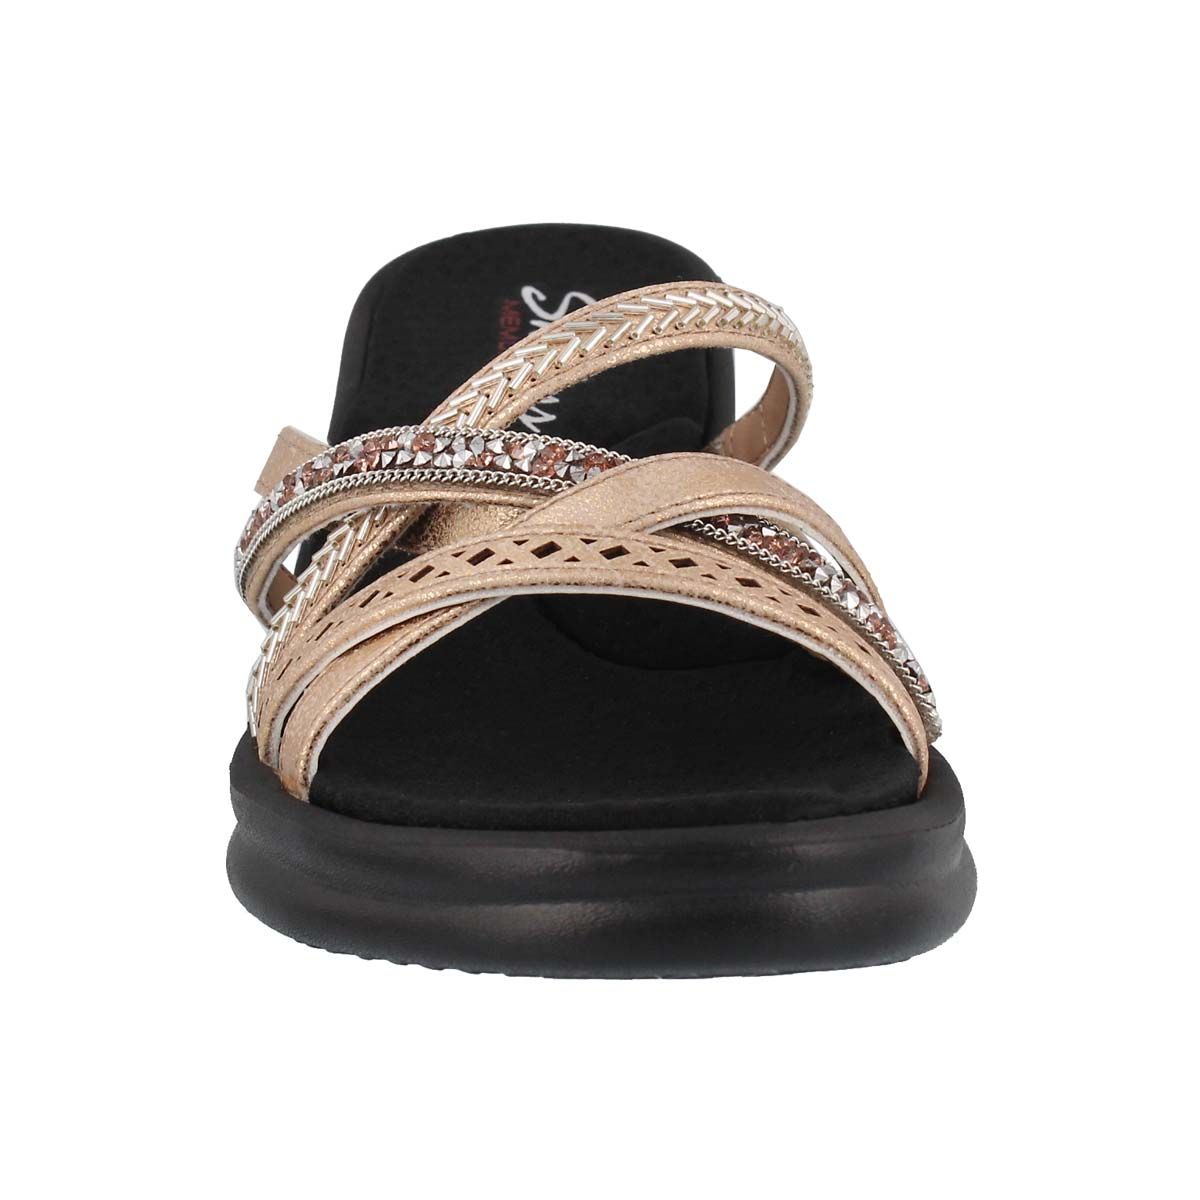 Lds Rumblers Wave rse gld wedge sandal